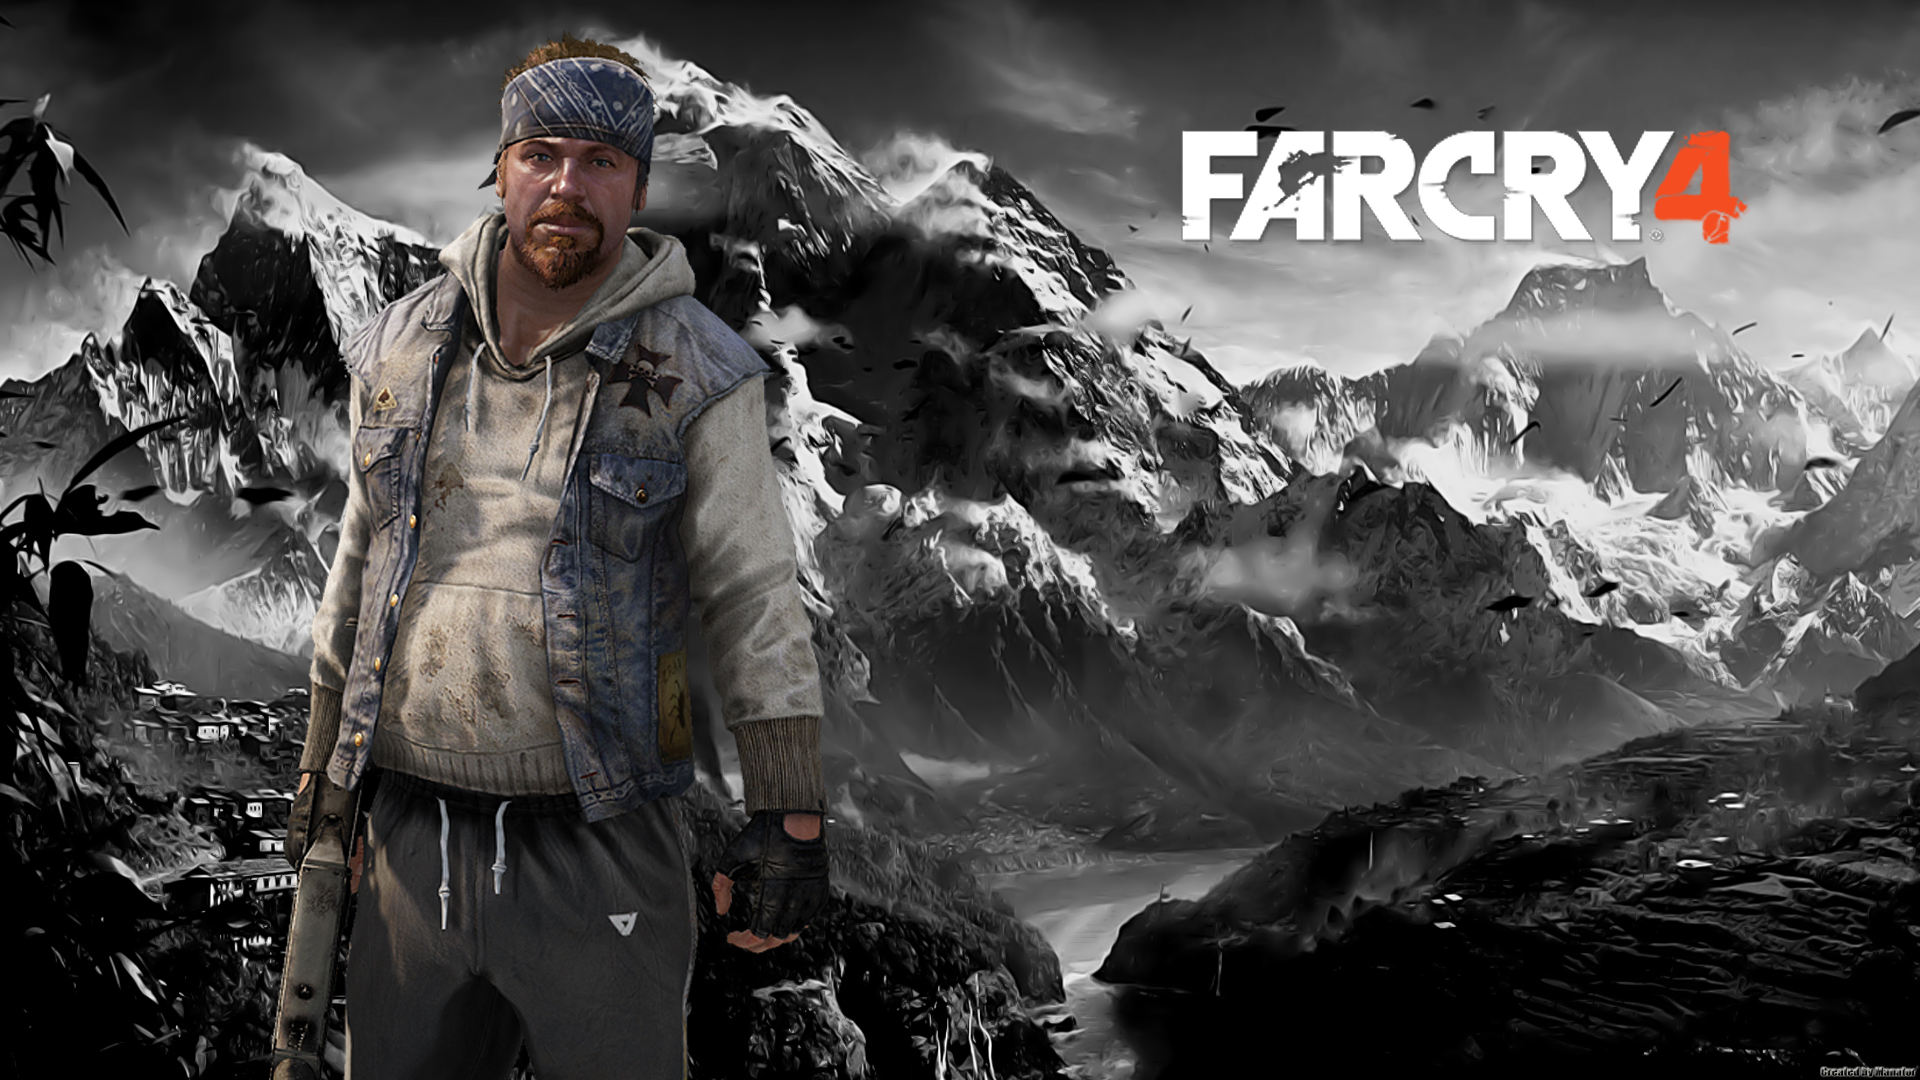 Far Cry 4 Wallpaper Free Downloads